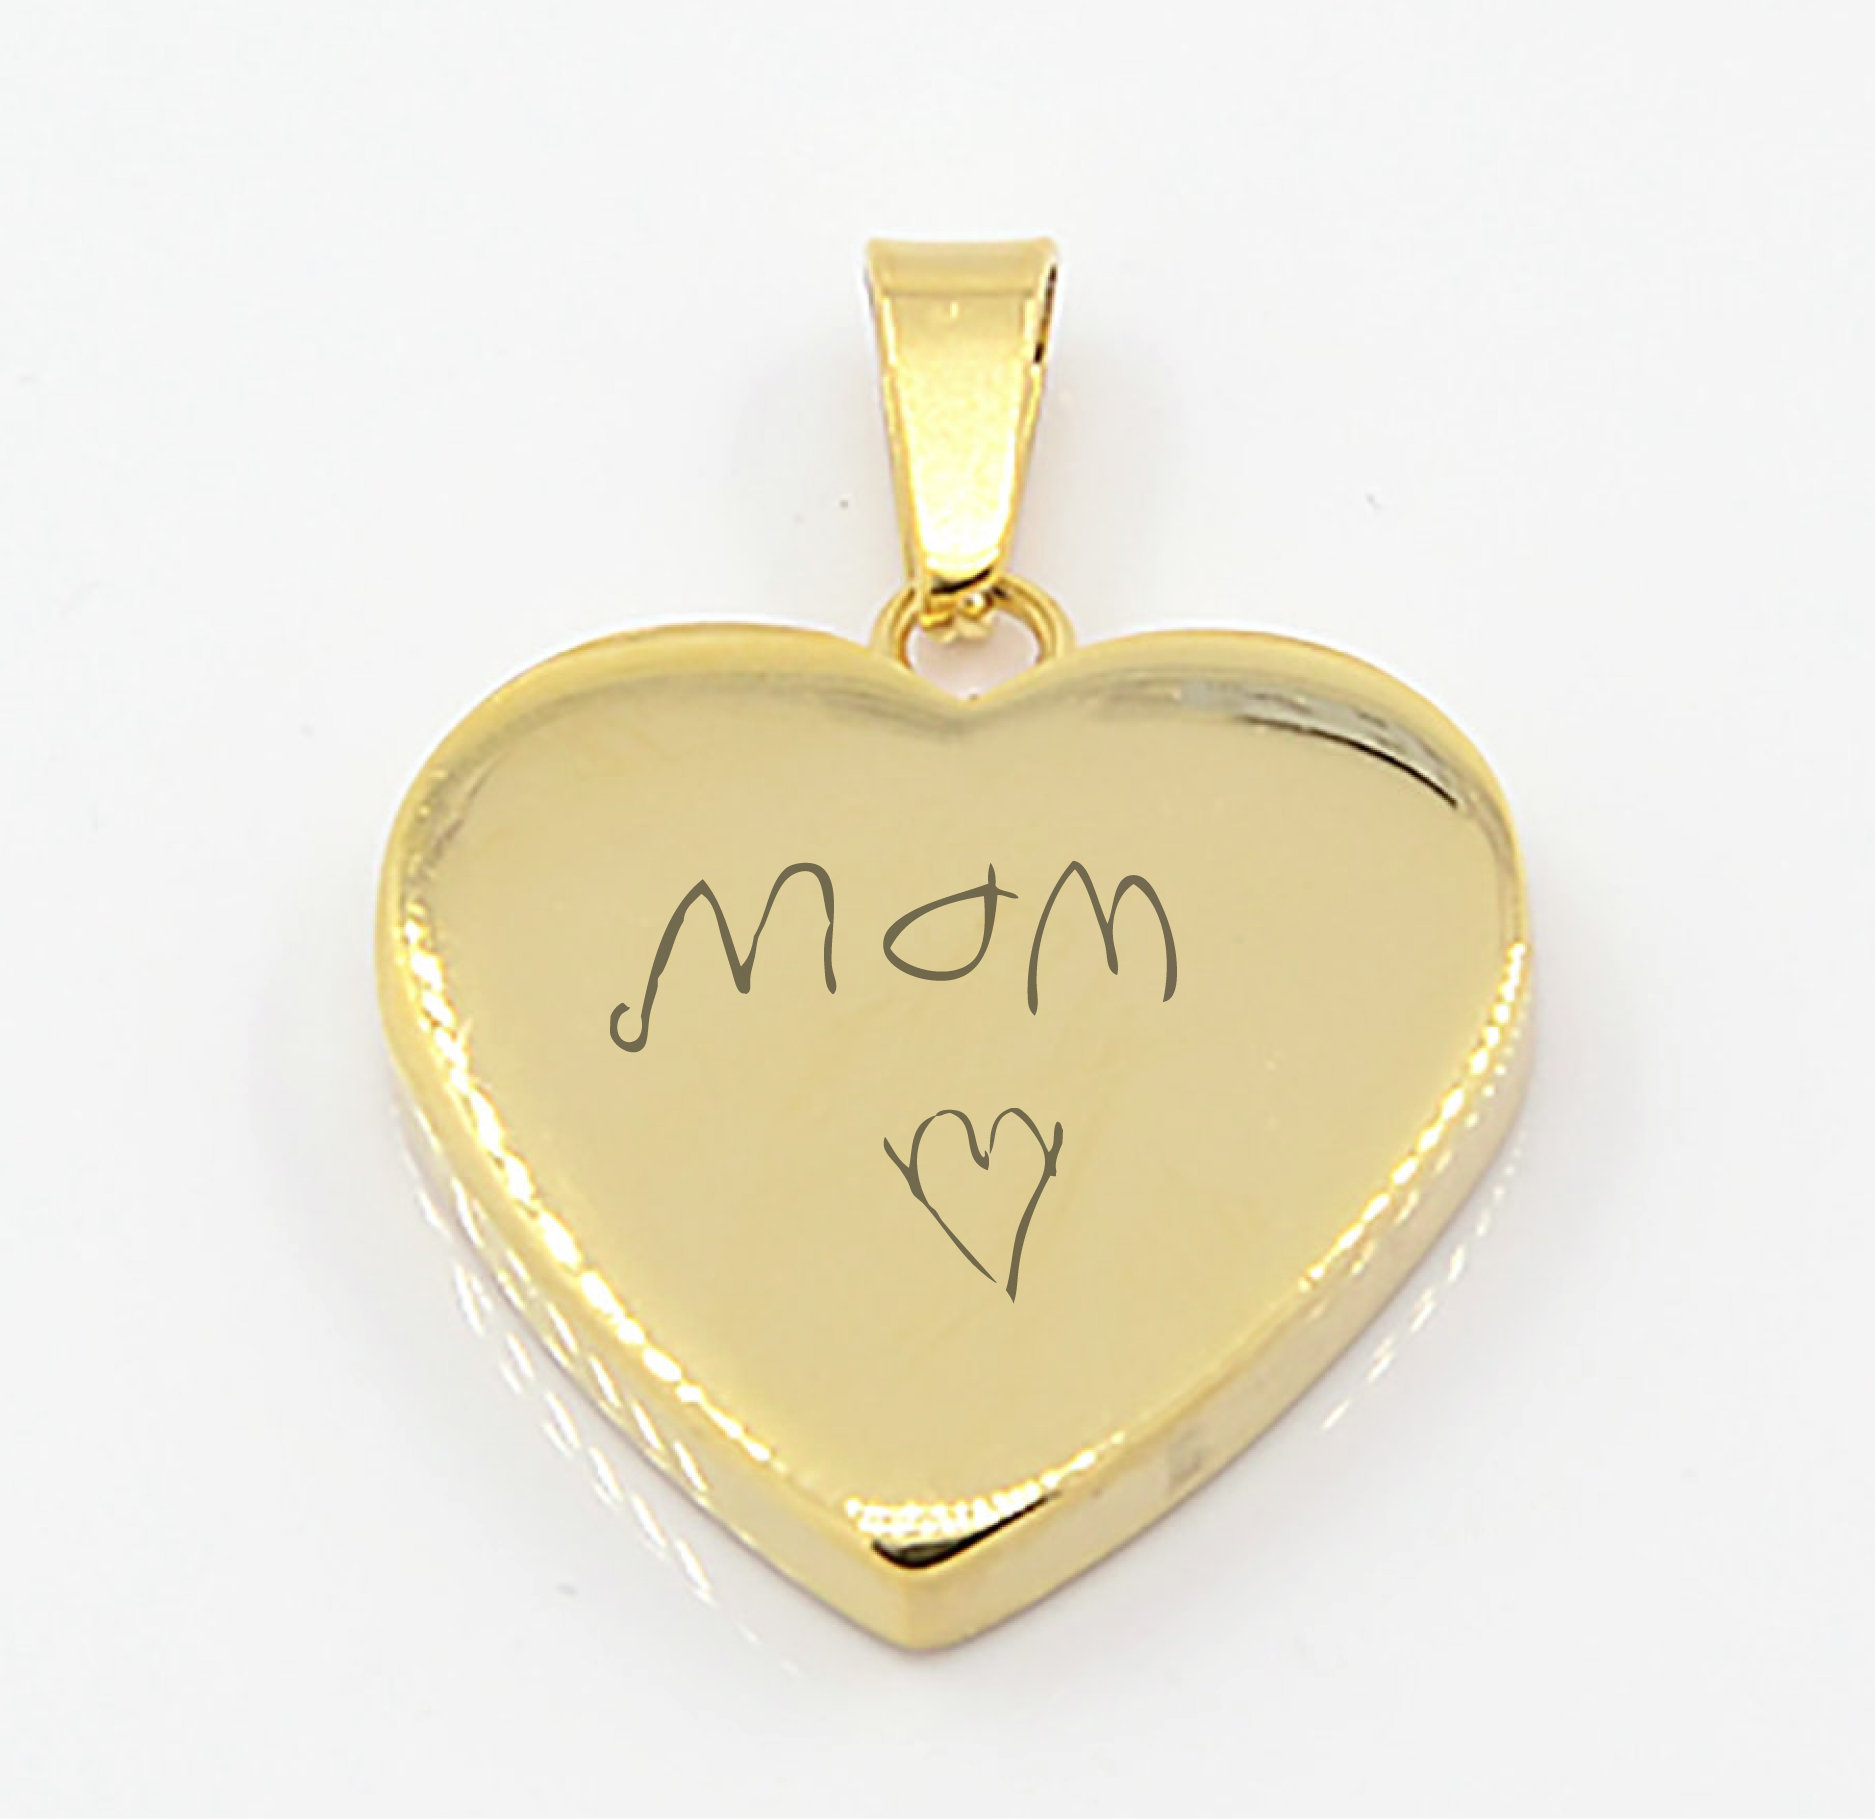 Personalized gold heart necklace mothers day jewelry gift engraved prev aloadofball Image collections